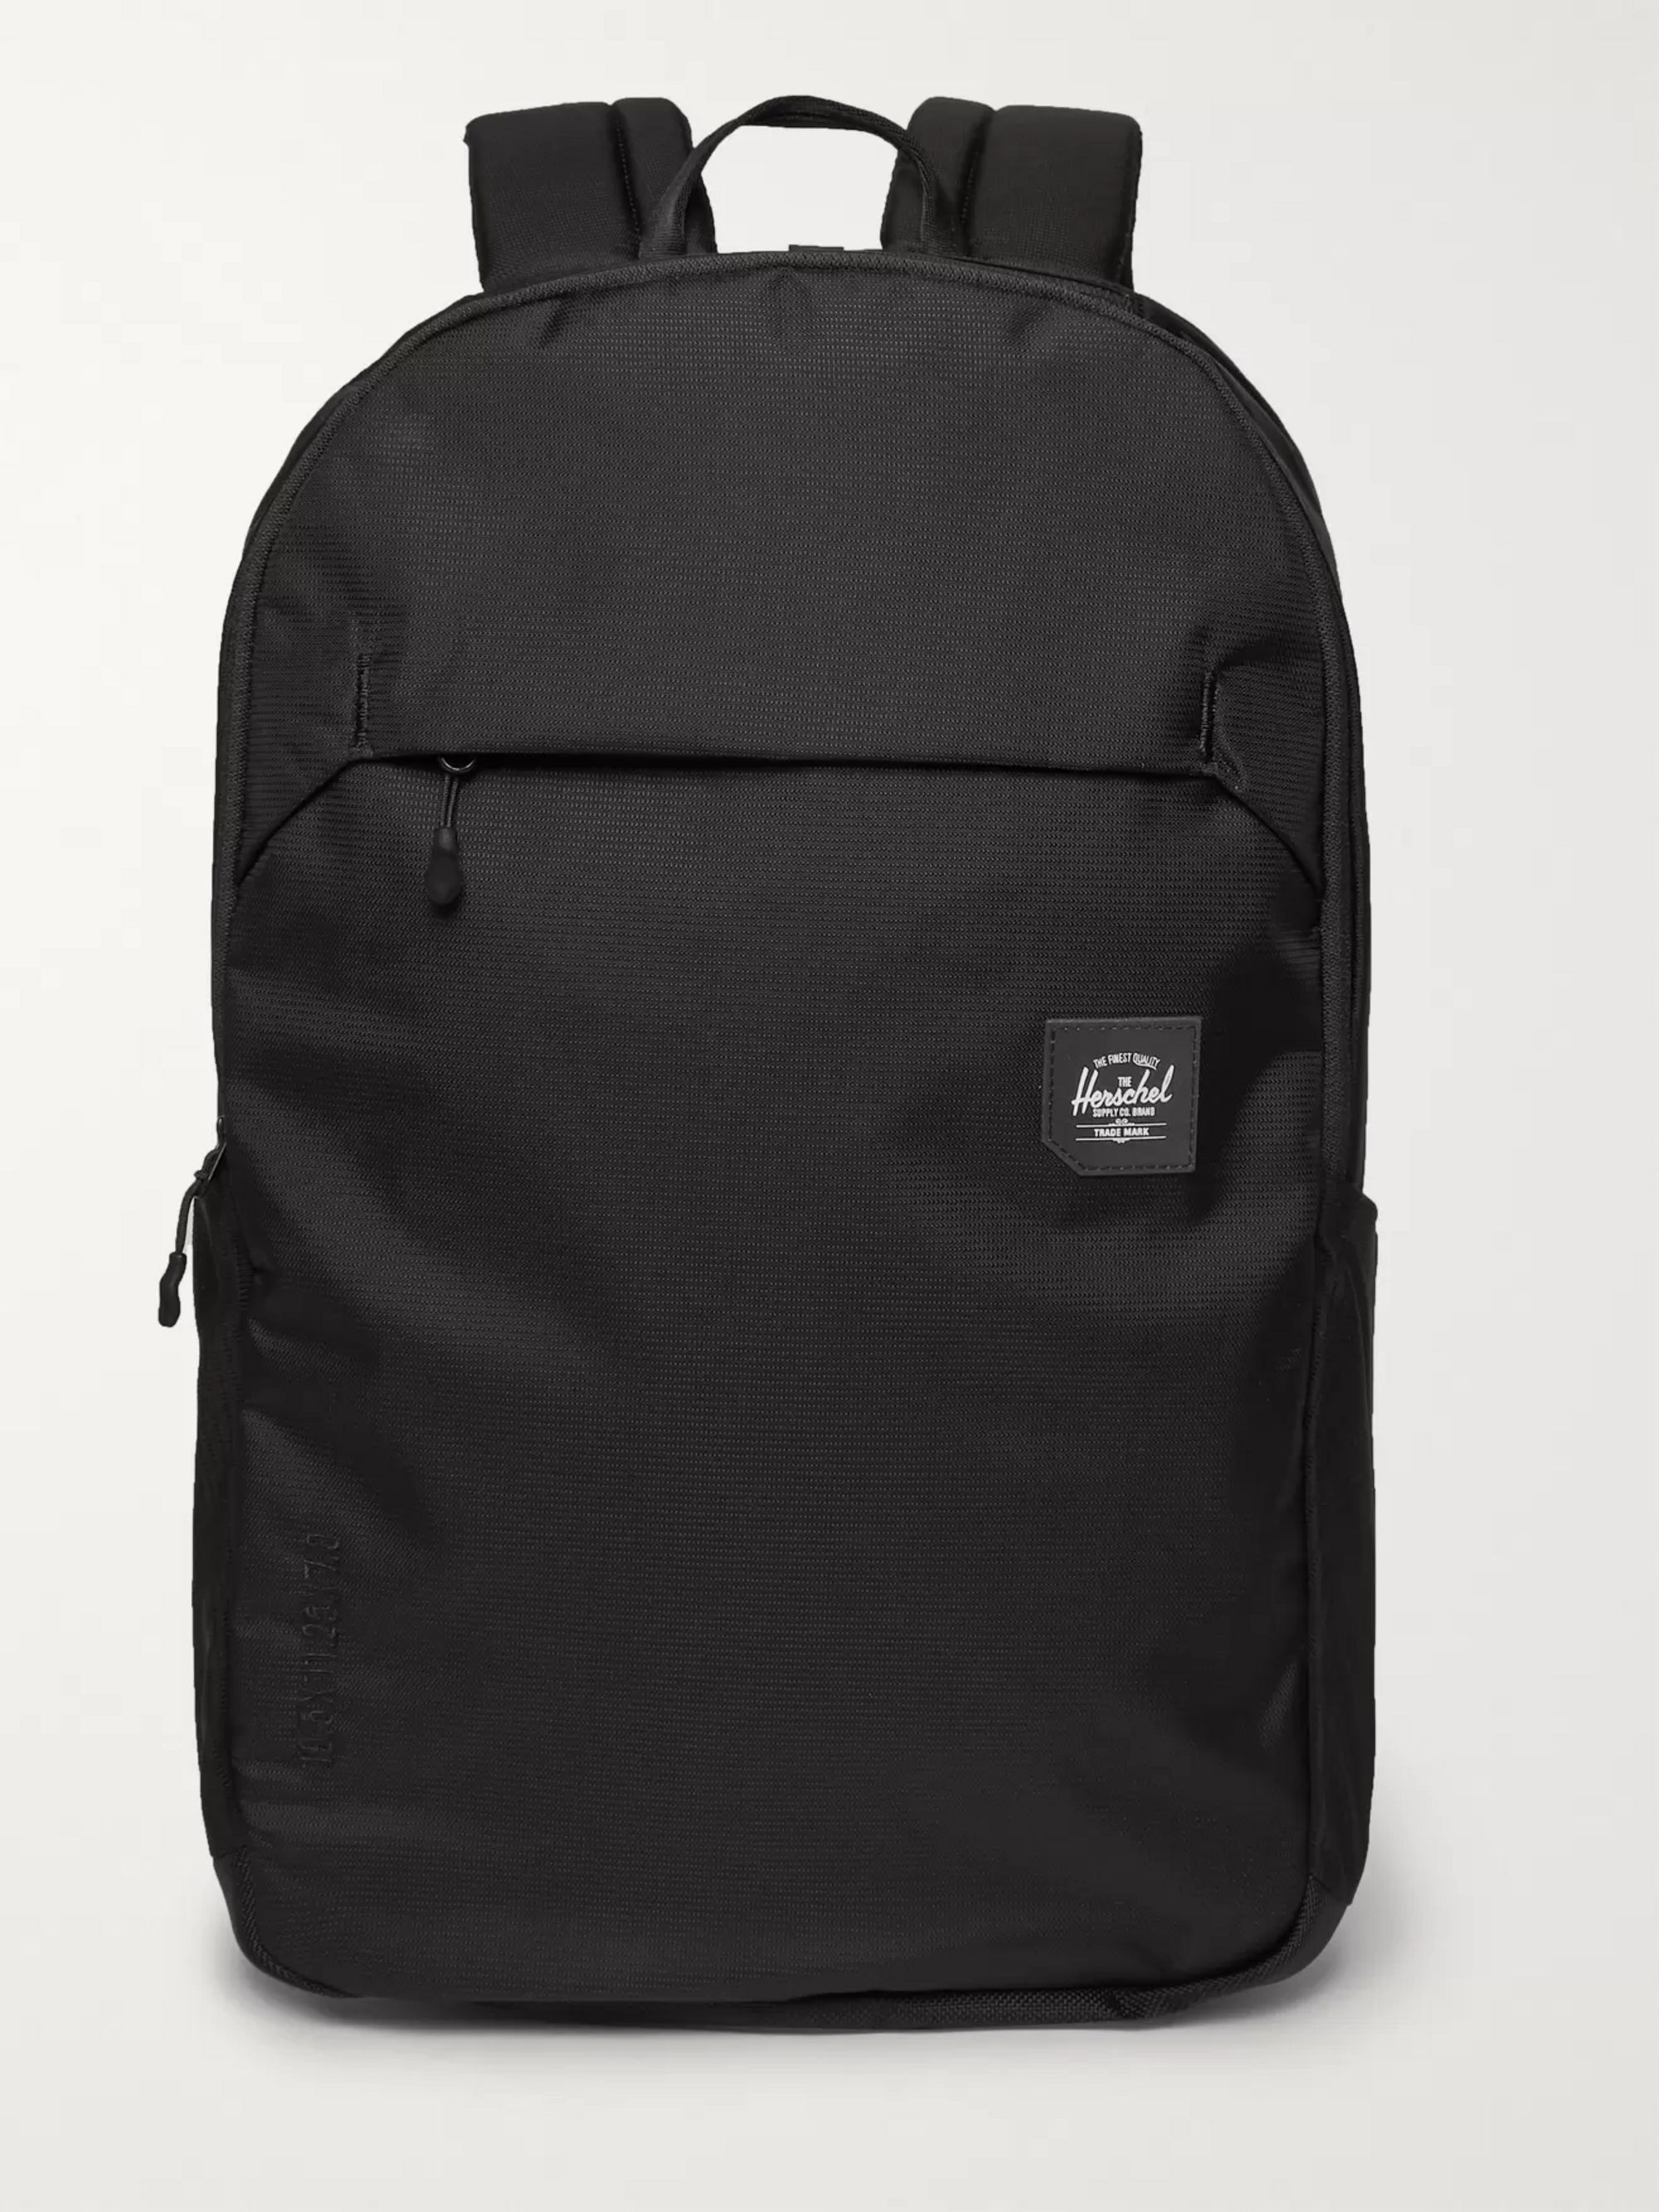 Herschel Supply Co Mammoth Large Dobby-Nylon Backpack